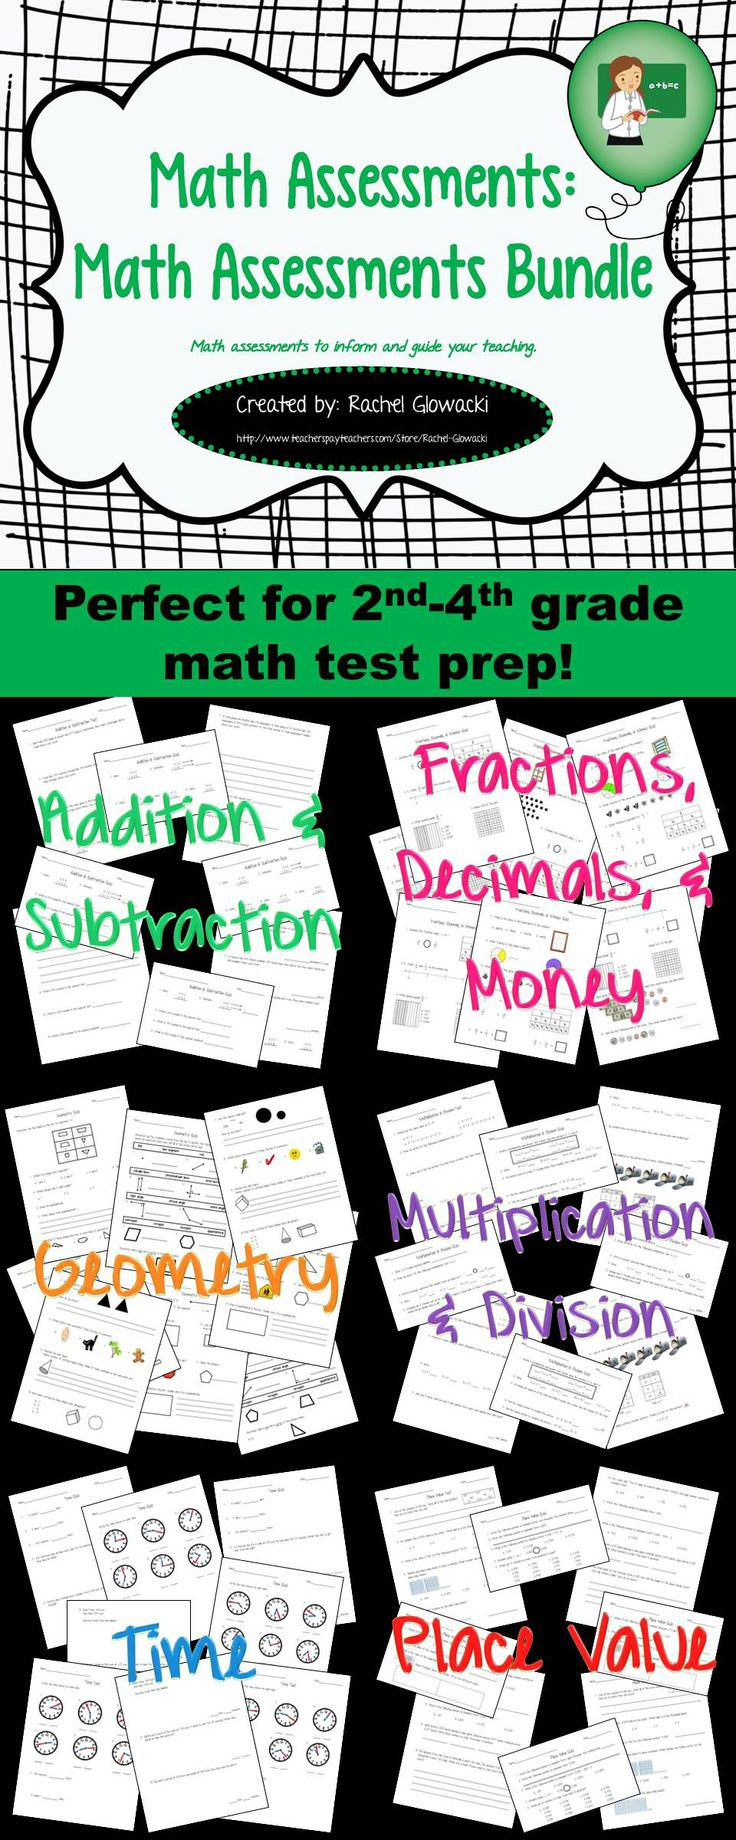 Quizzes - If You Are Looking For Math Focused Tests And Quizzes To Assist With Your Standardized Test